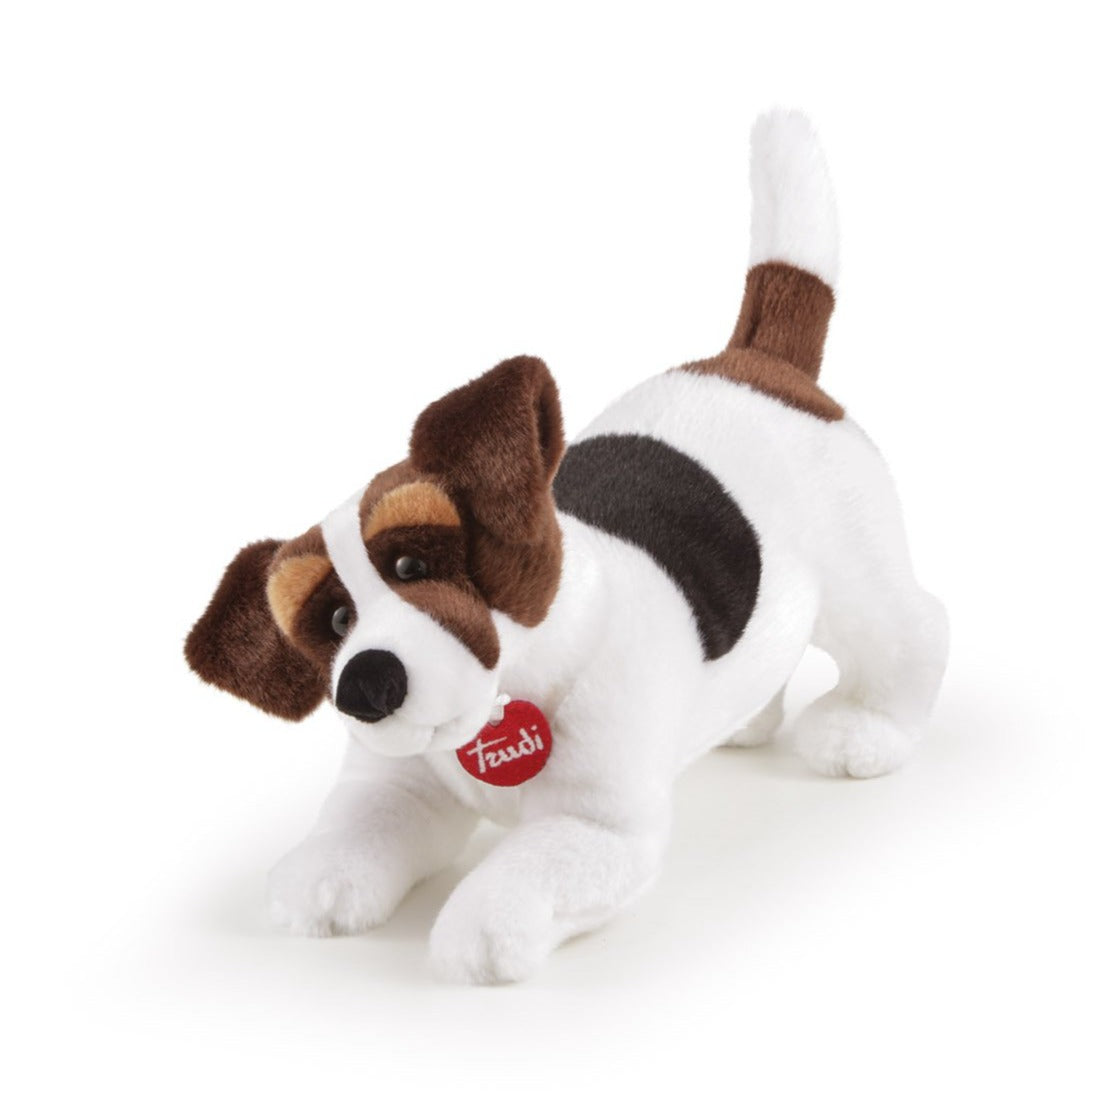 Classic Dog Jack Russell - M 39cmcm